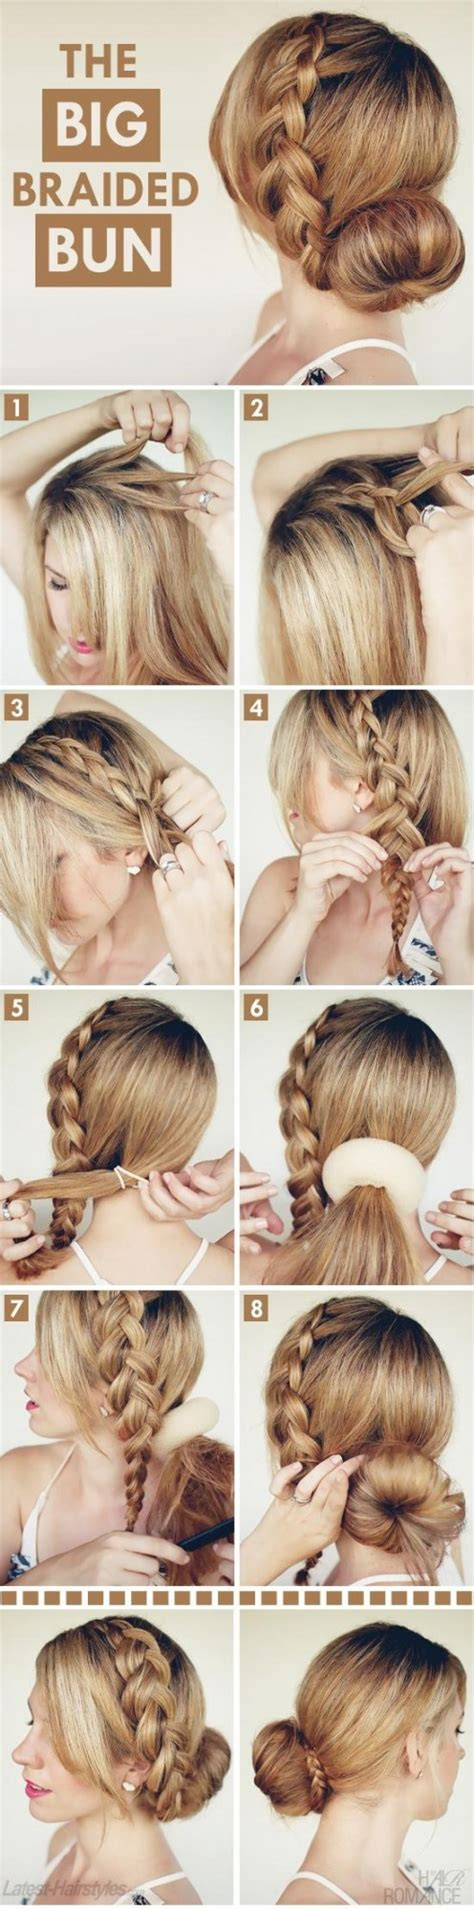 Easy Hairstyles Tutorials by 32 Amazing And Easy Hairstyles Tutorials For Summer